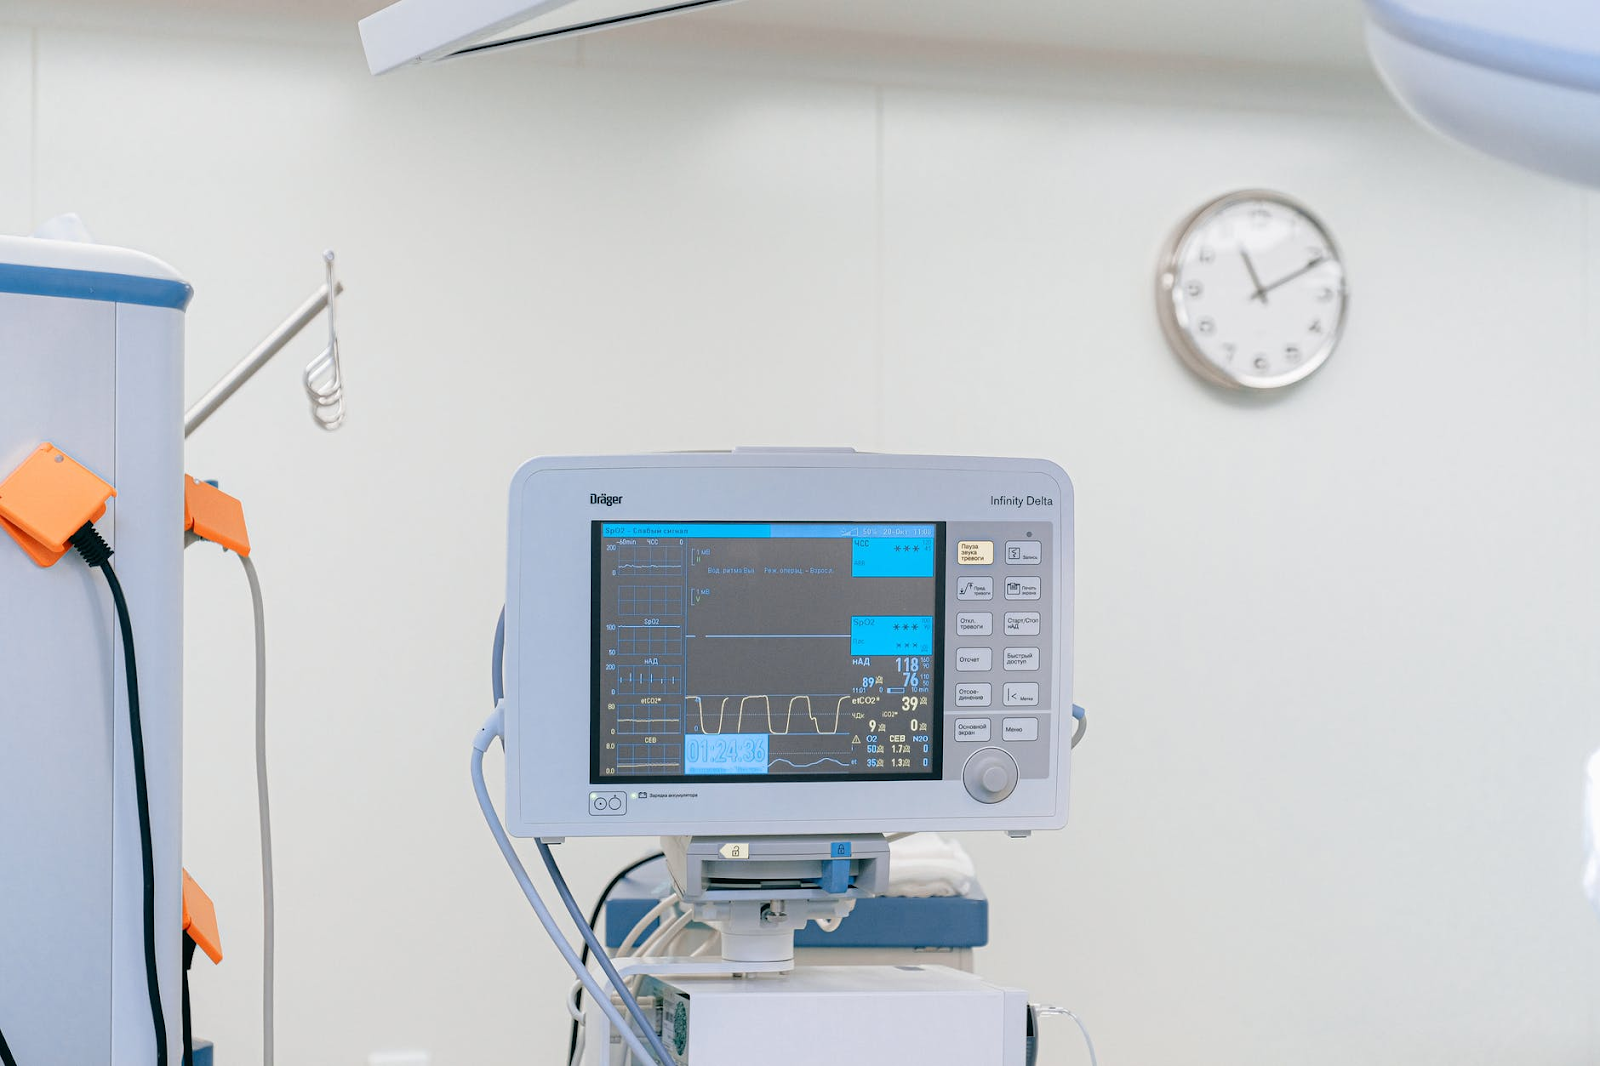 Patients are supervised during detoxification procedures to ensure their safety